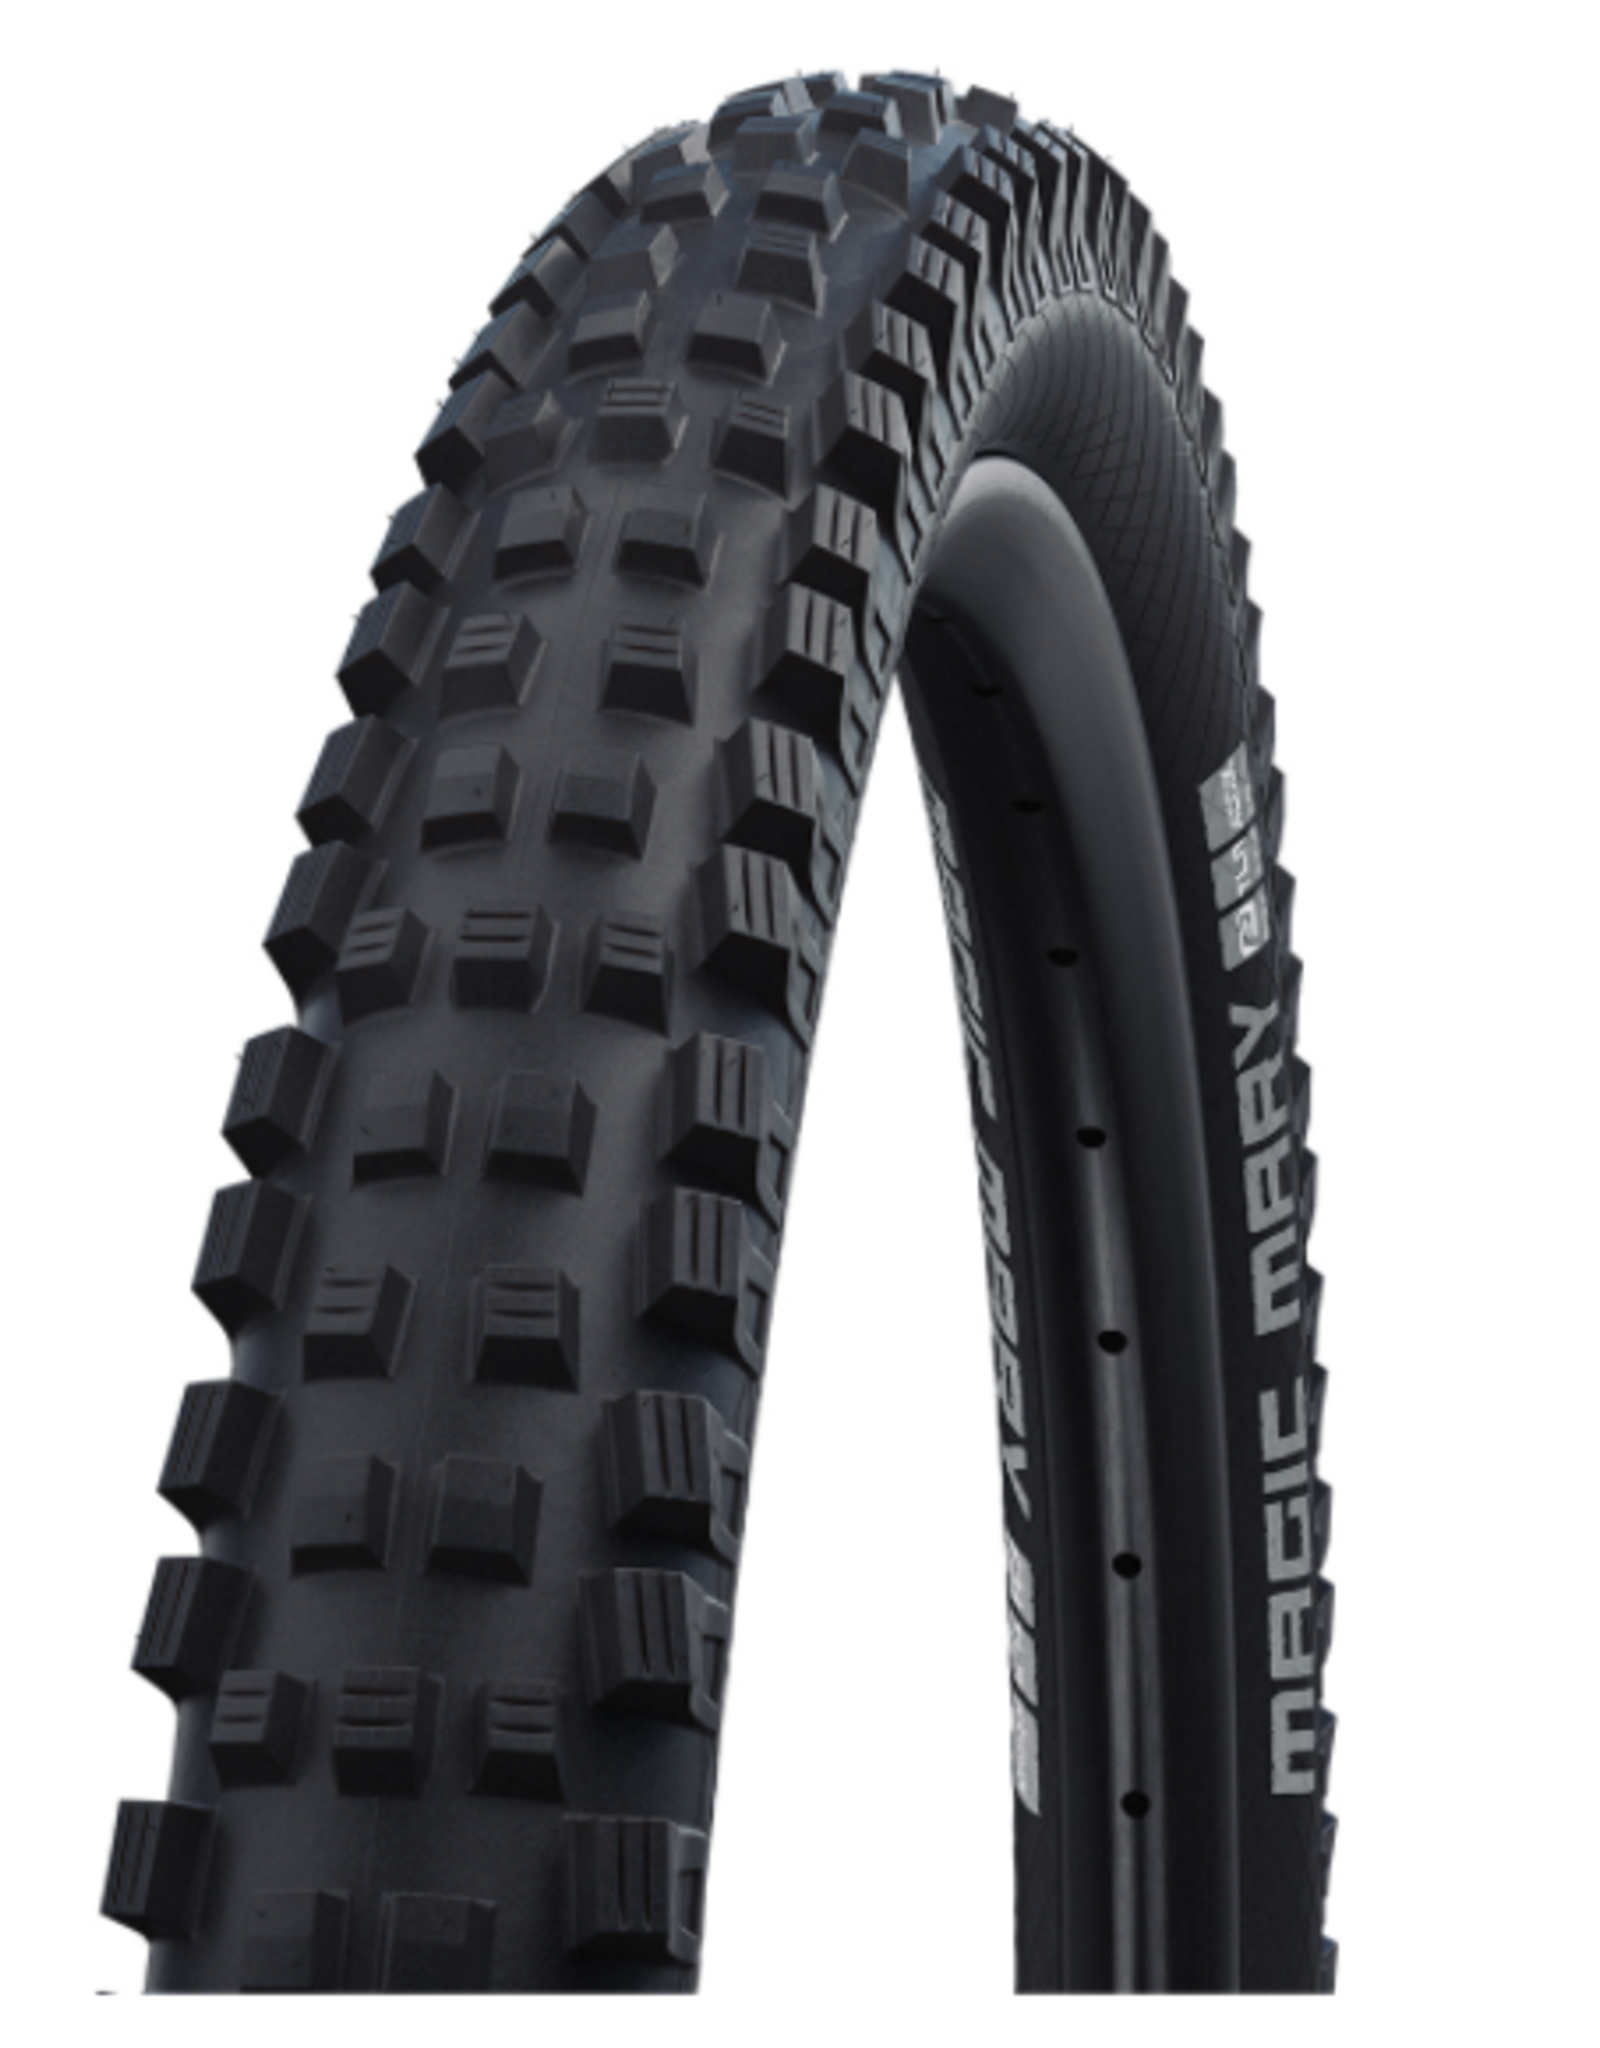 Schwalbe Schwalbe Magic Mary Bikepark 26 x 2.35 Addix Wired